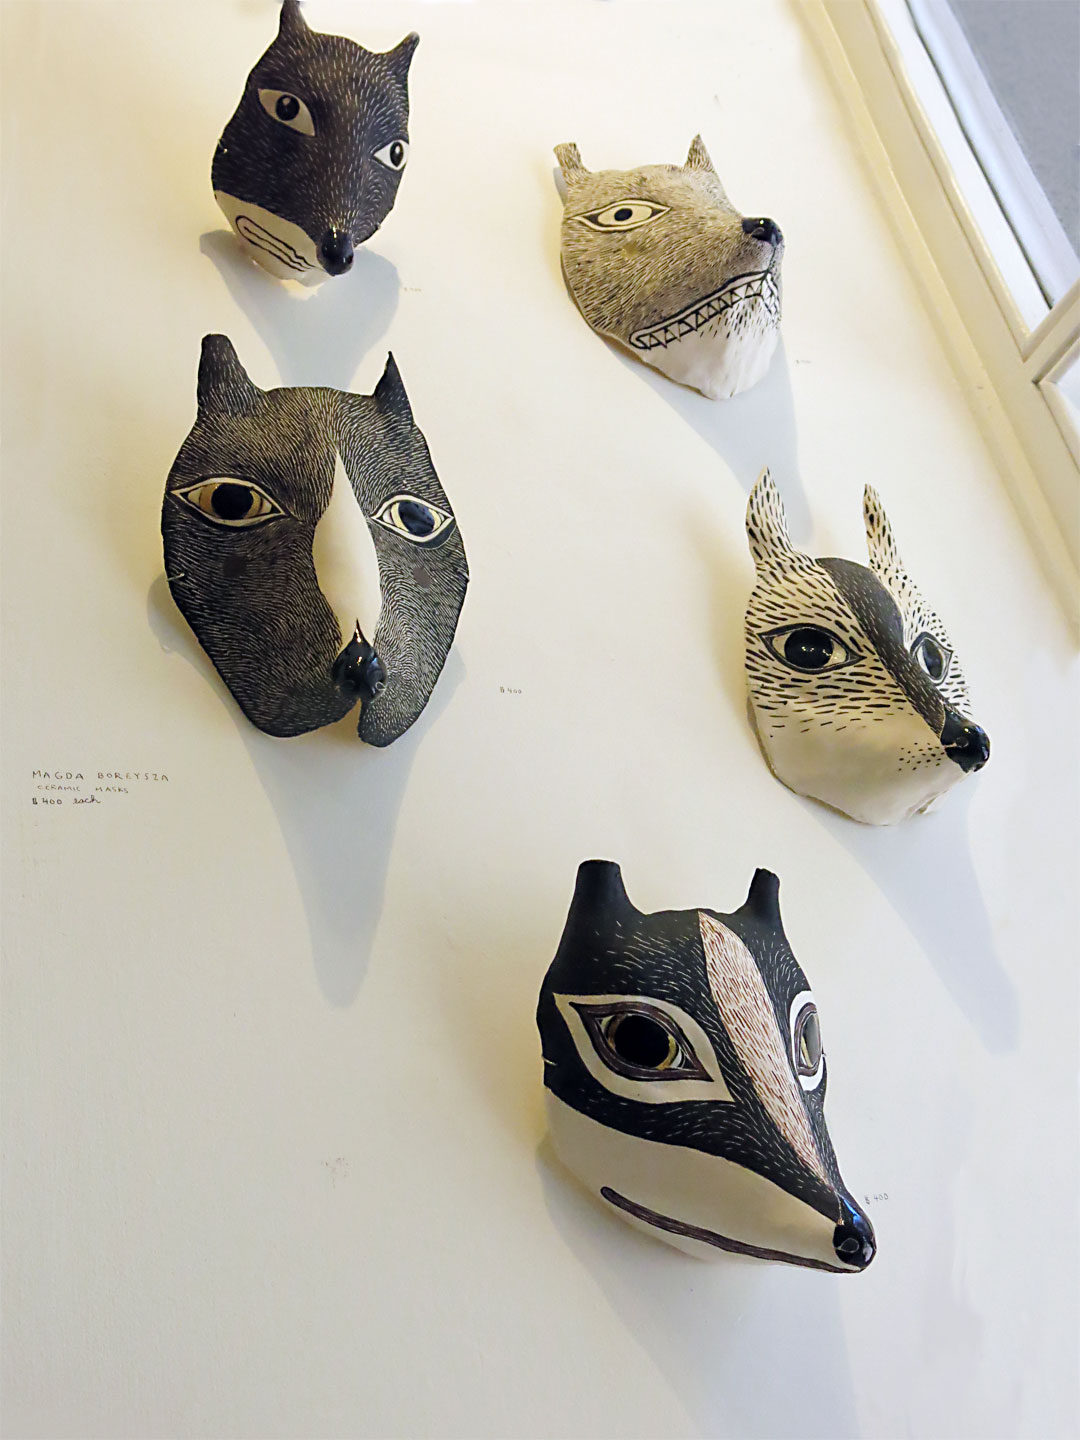 CERAMIC MASKS by Magda Boreysza.